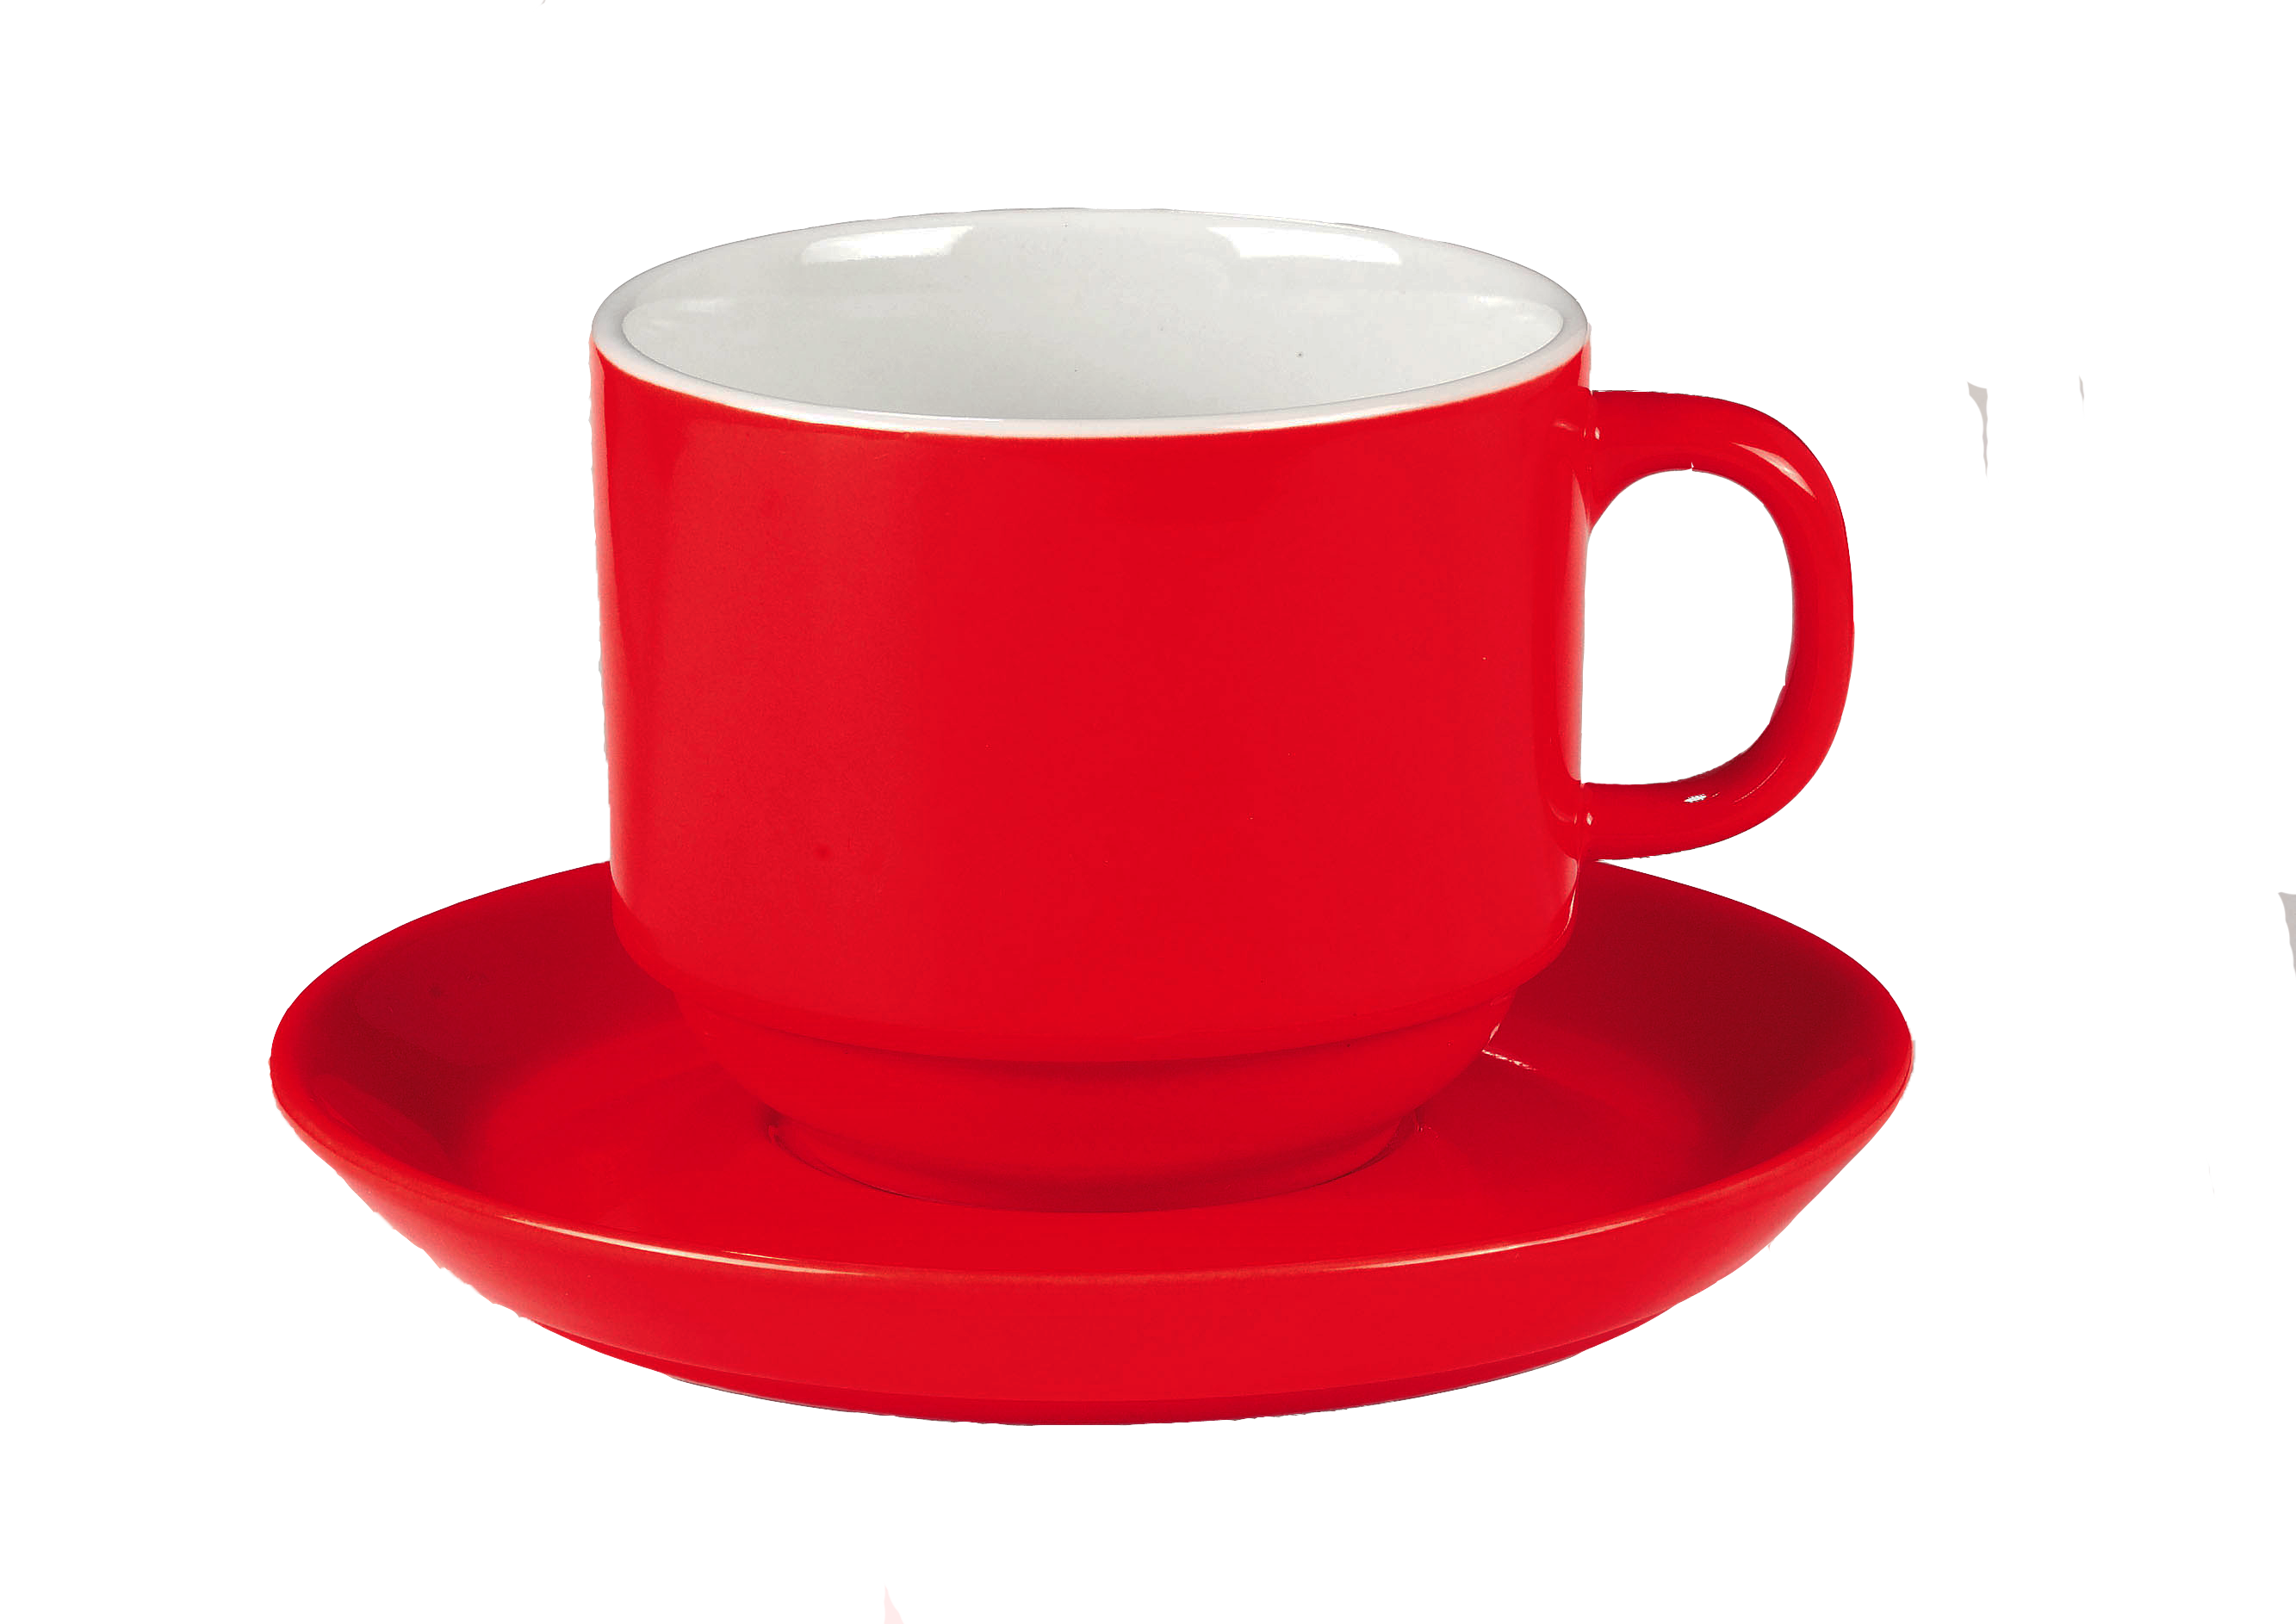 cup transparent red plastic